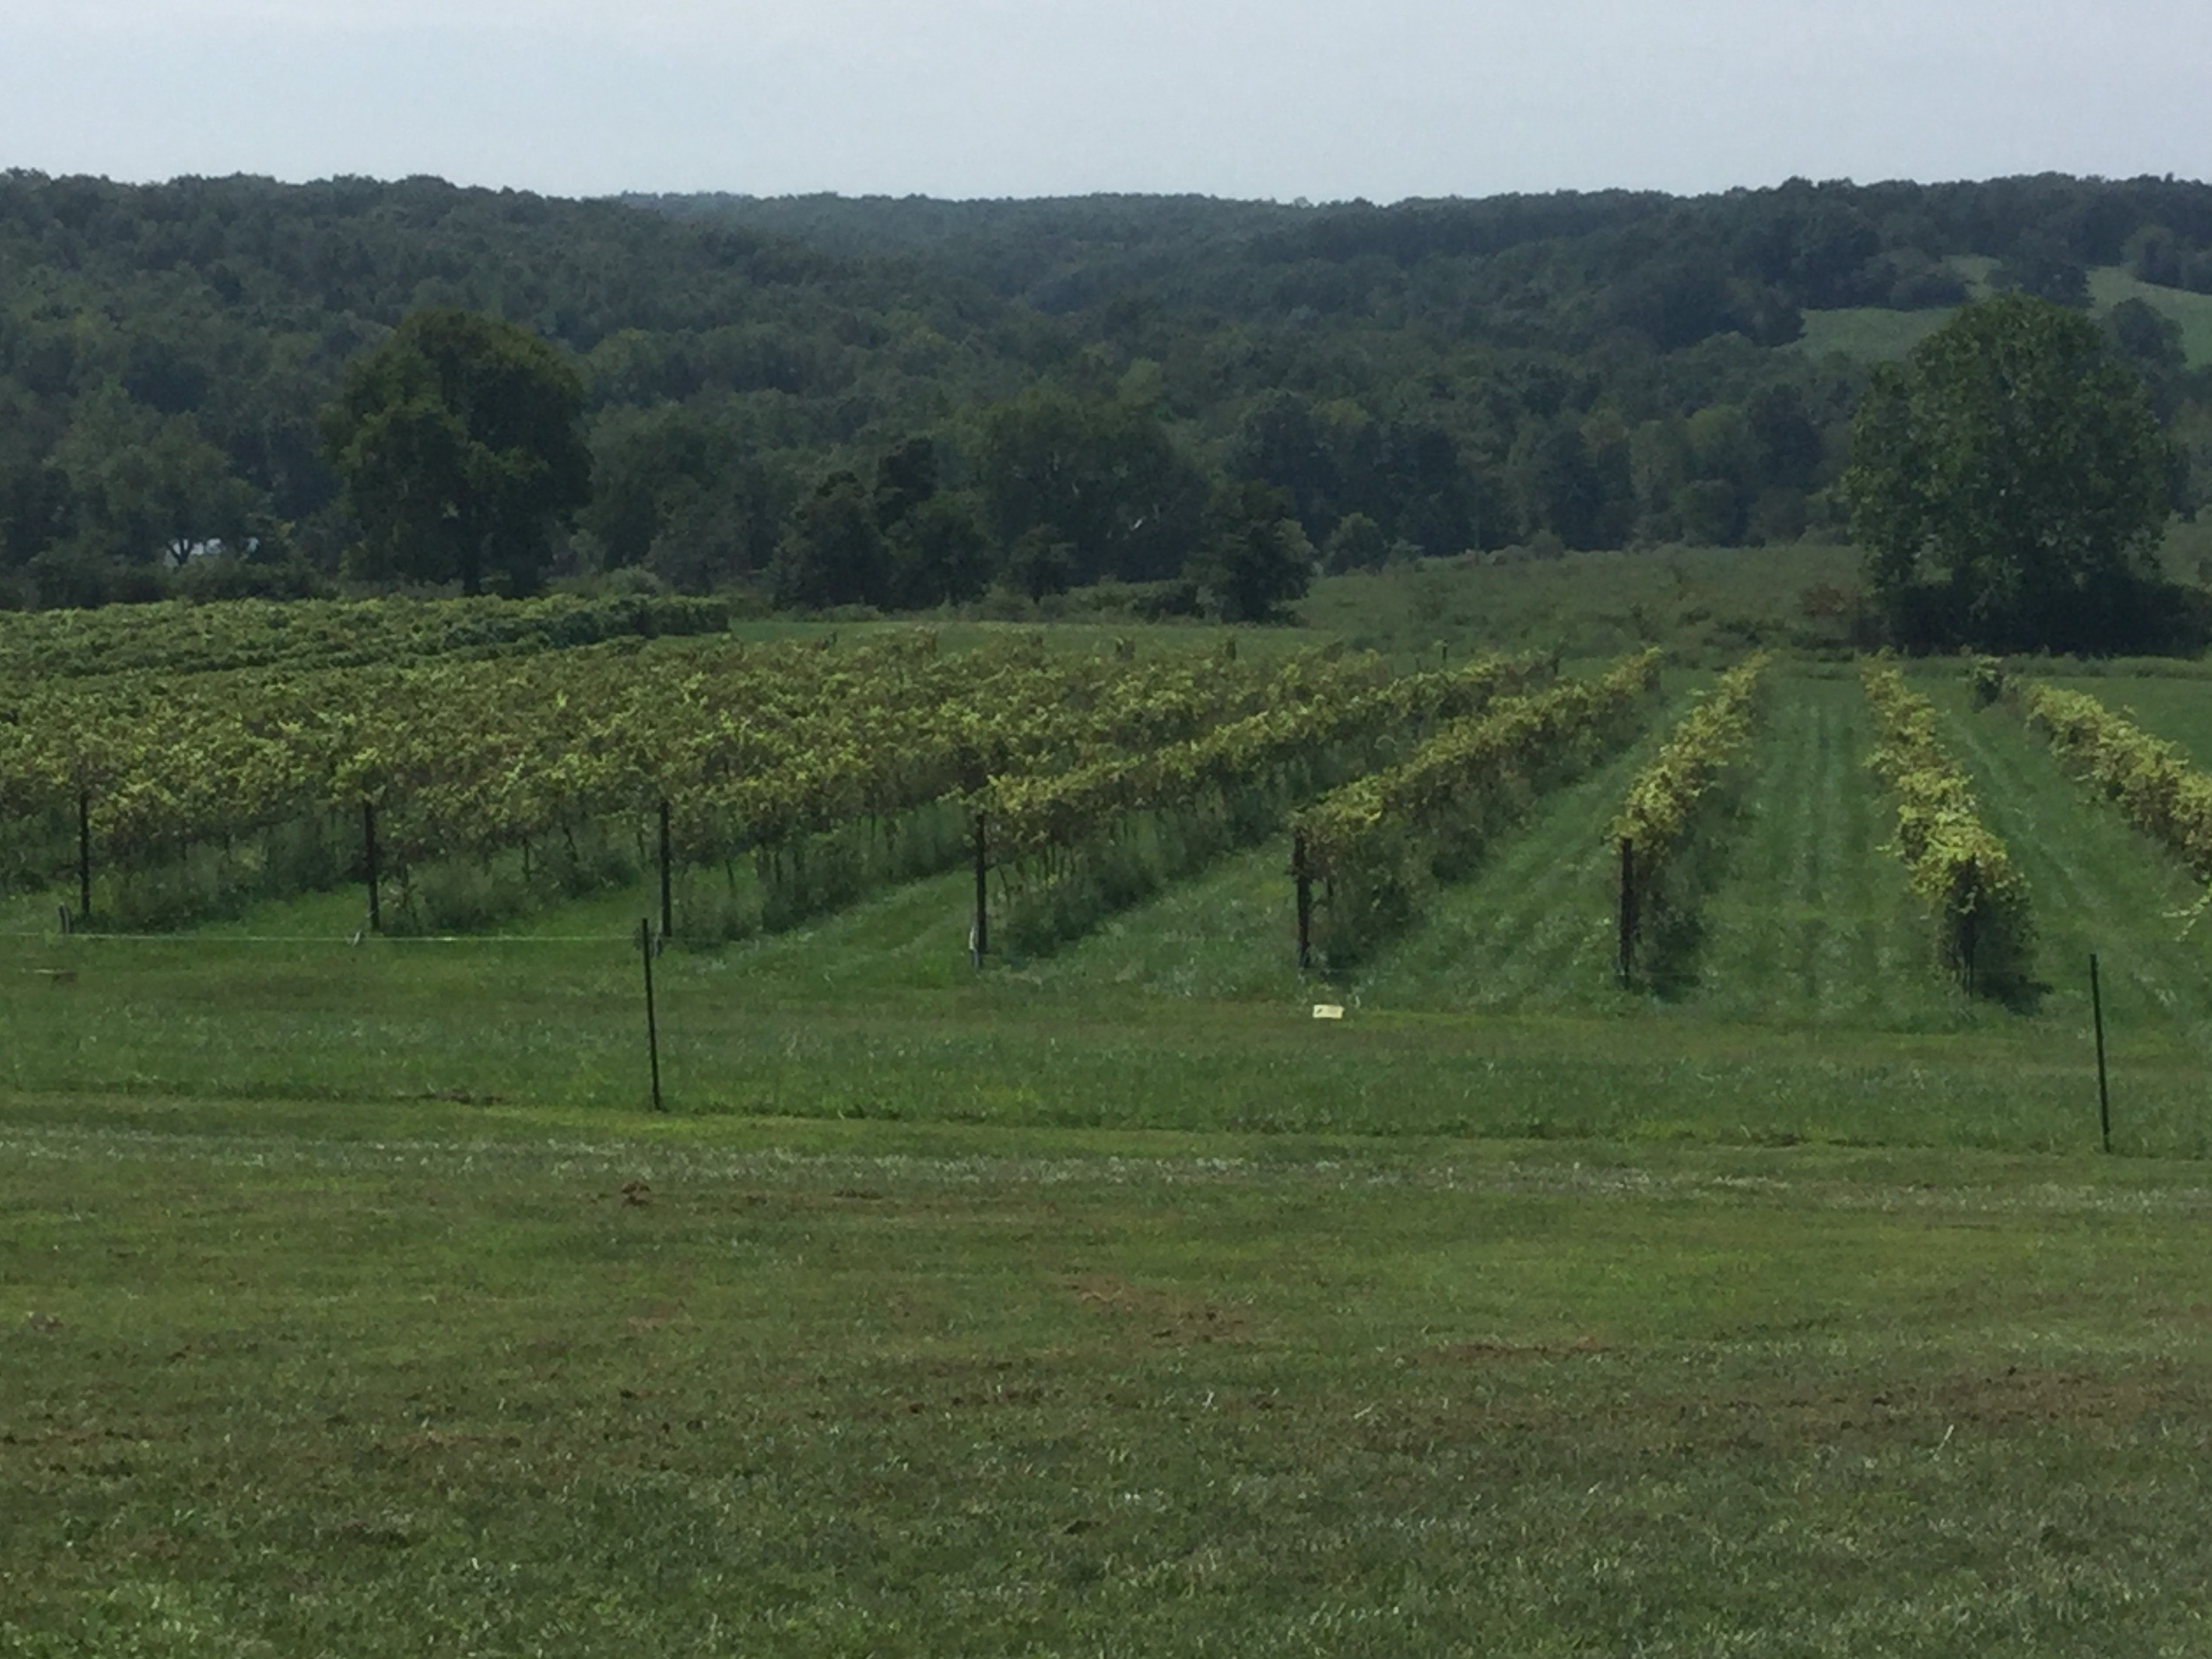 Ozarks Vineyard, Bed & Breakfast